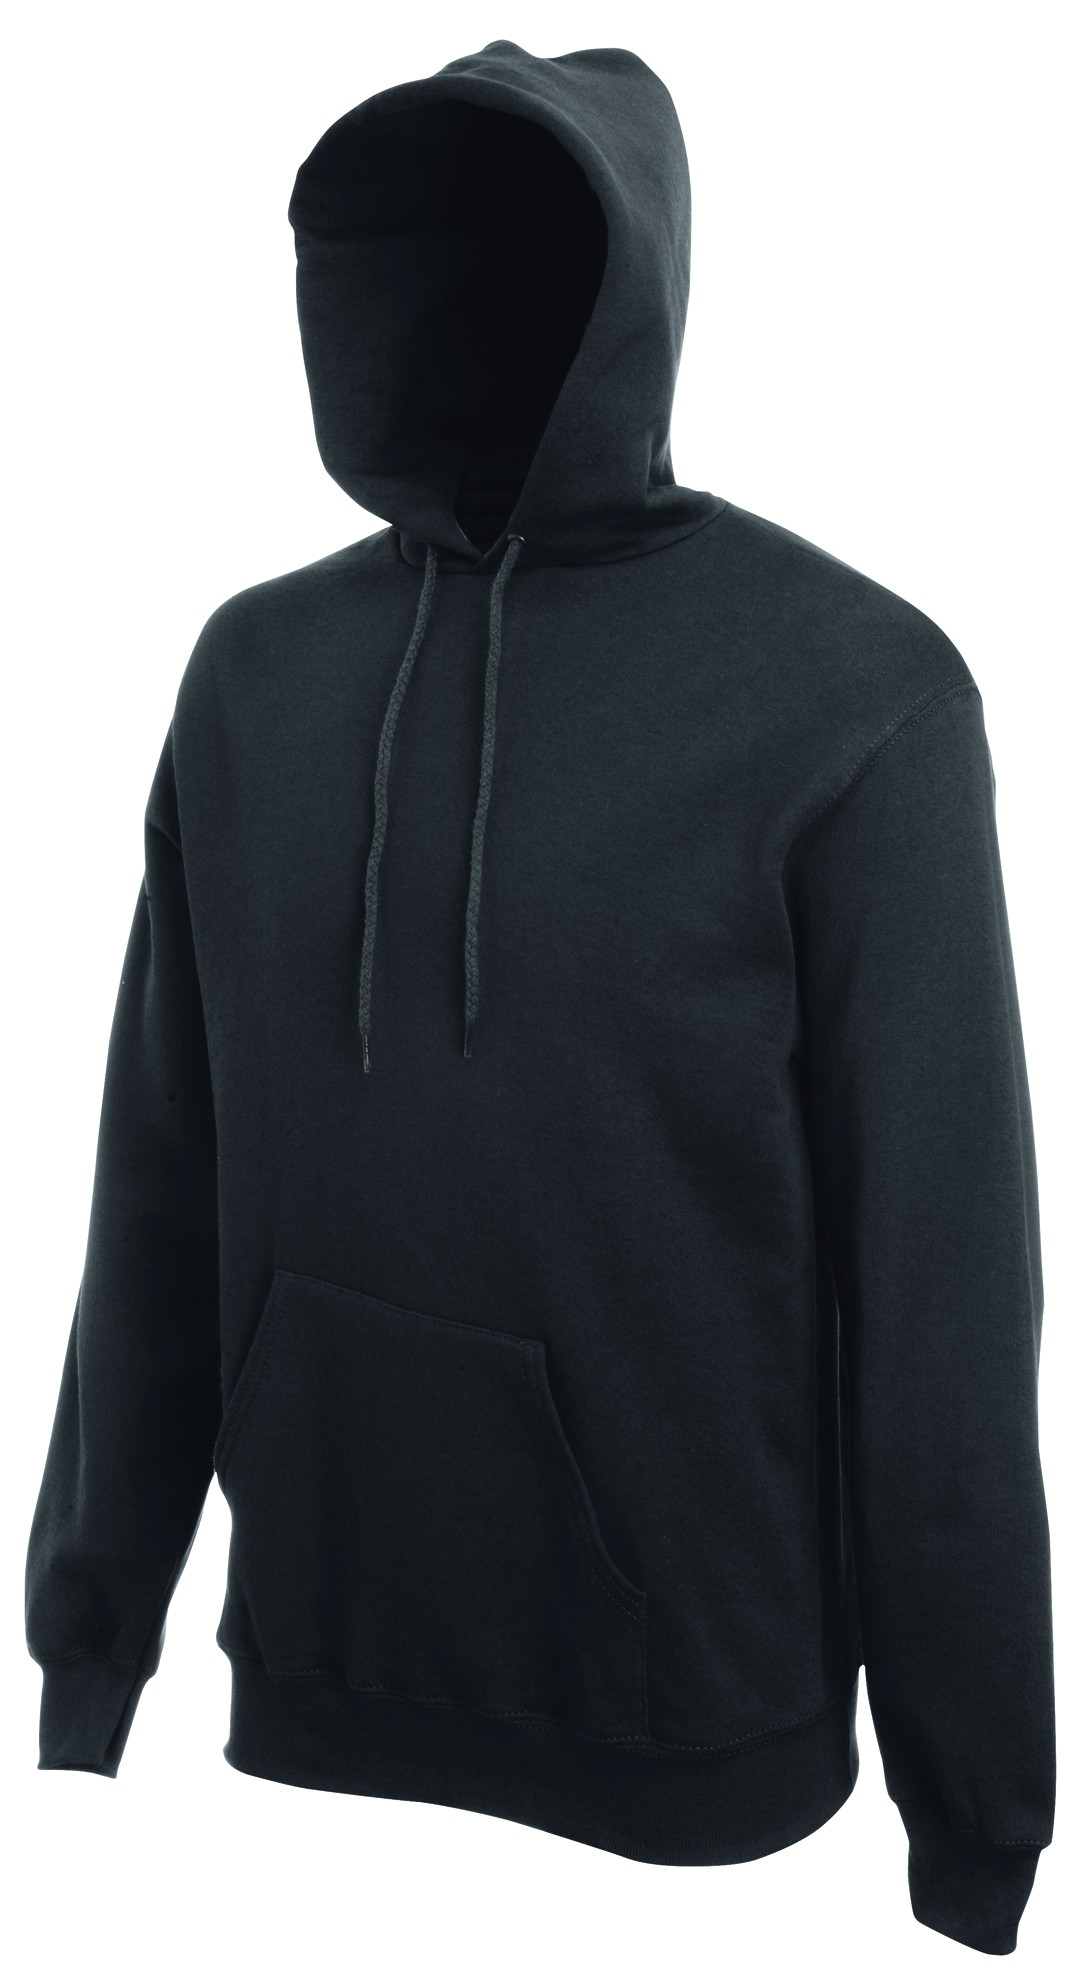 Fruit of the Loom Hooded Sweater SC244C Charcoal